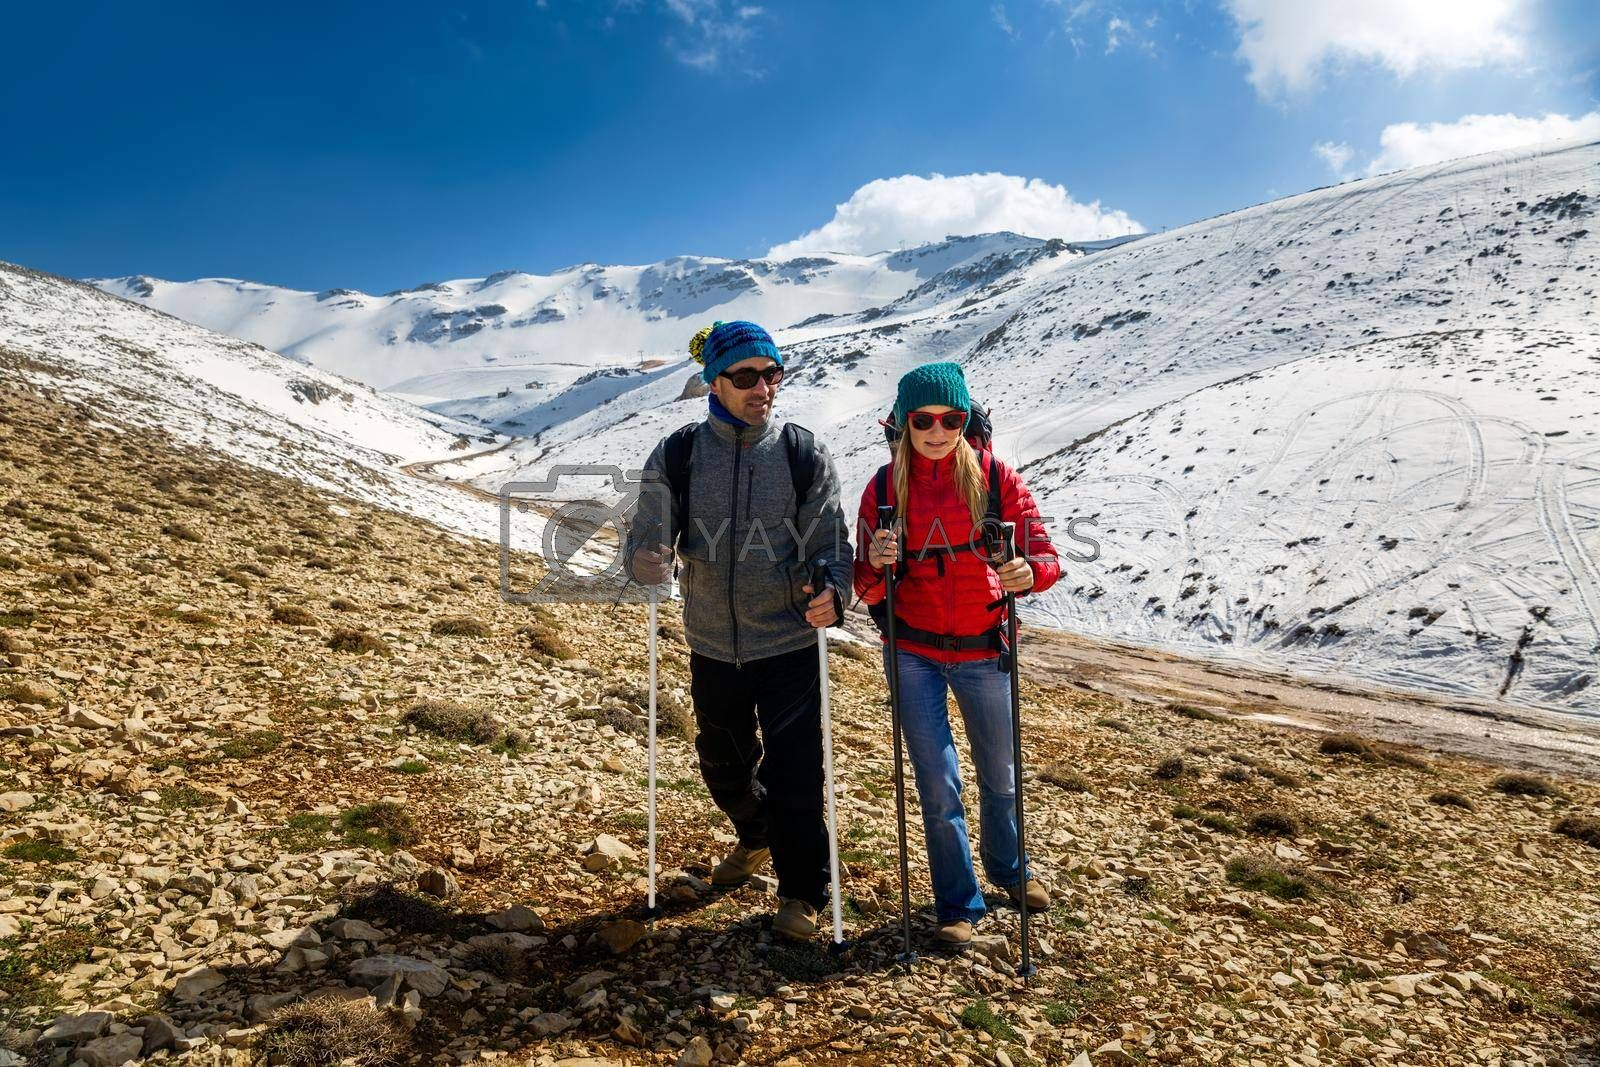 Nice Couple Climbing the Mountain with Trekking Poles. Enjoying Amazing View. Happy Active Winter Holidays. Wintertime Sport. Zest for Life.